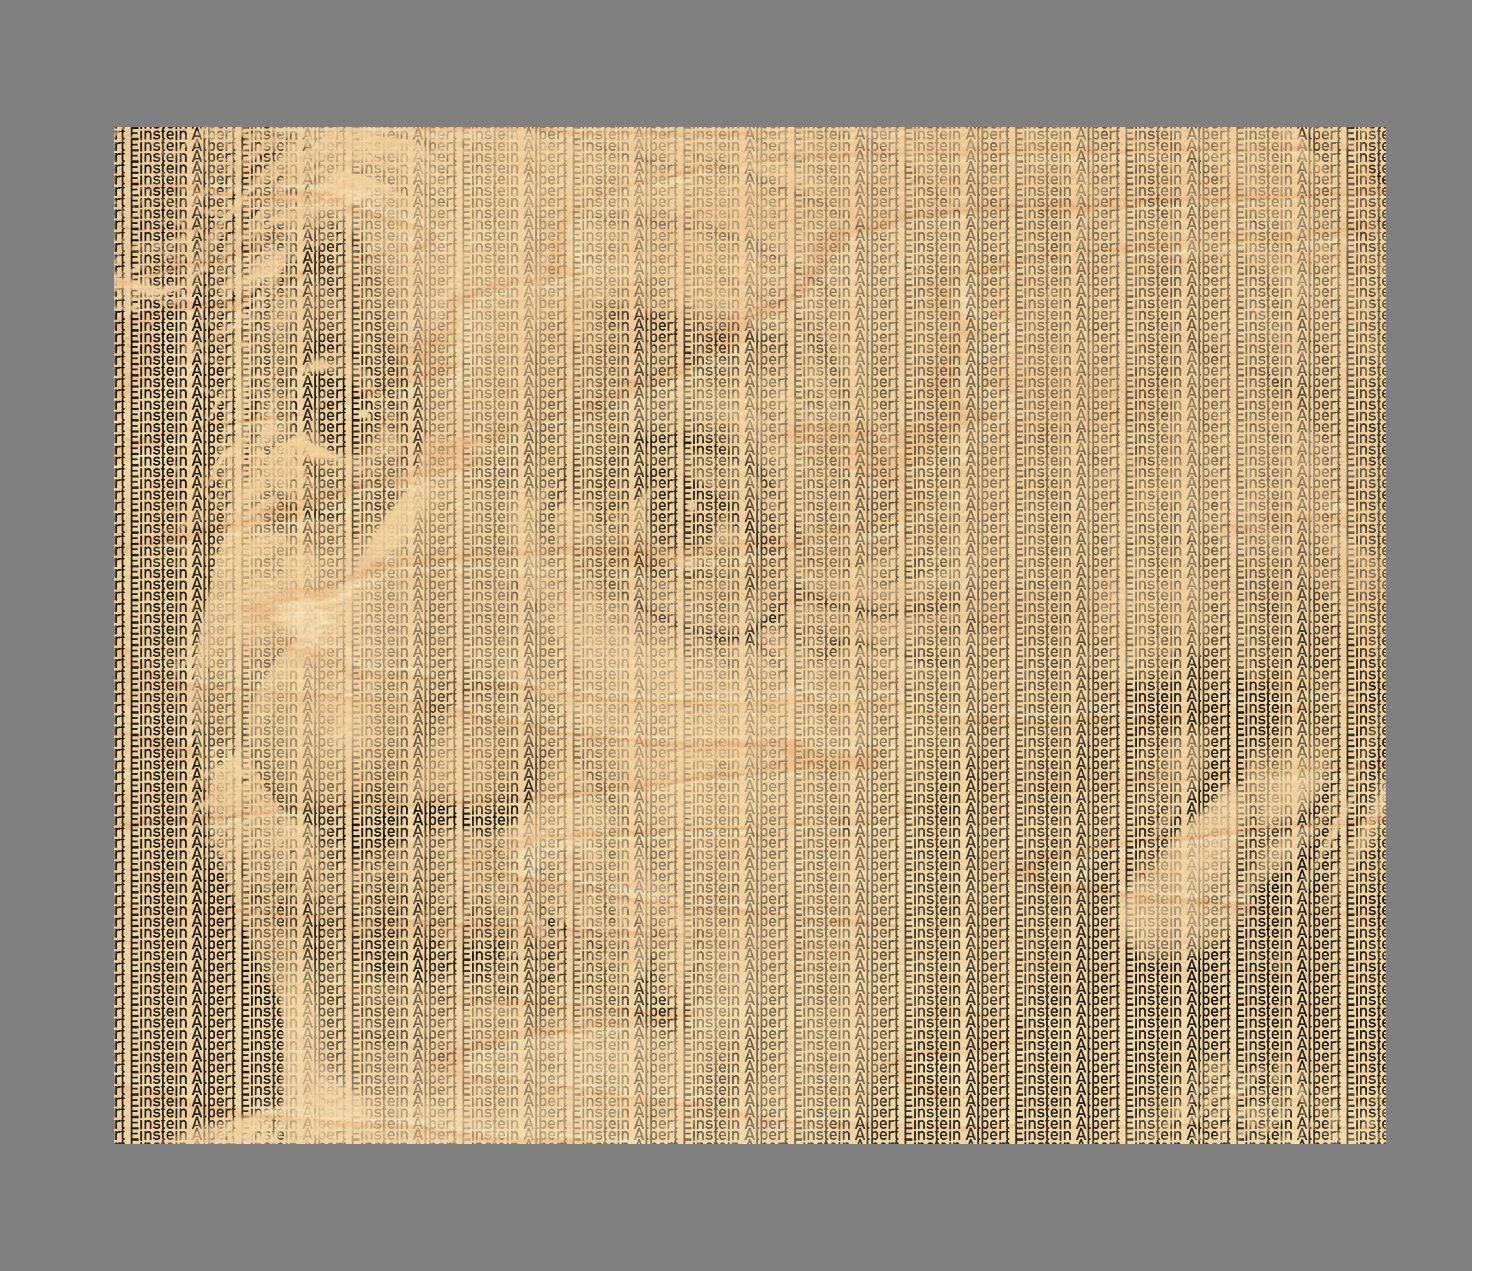 Albert Einstein, Quote Art, Wall Art, Vintage Print, Wall Decor ...